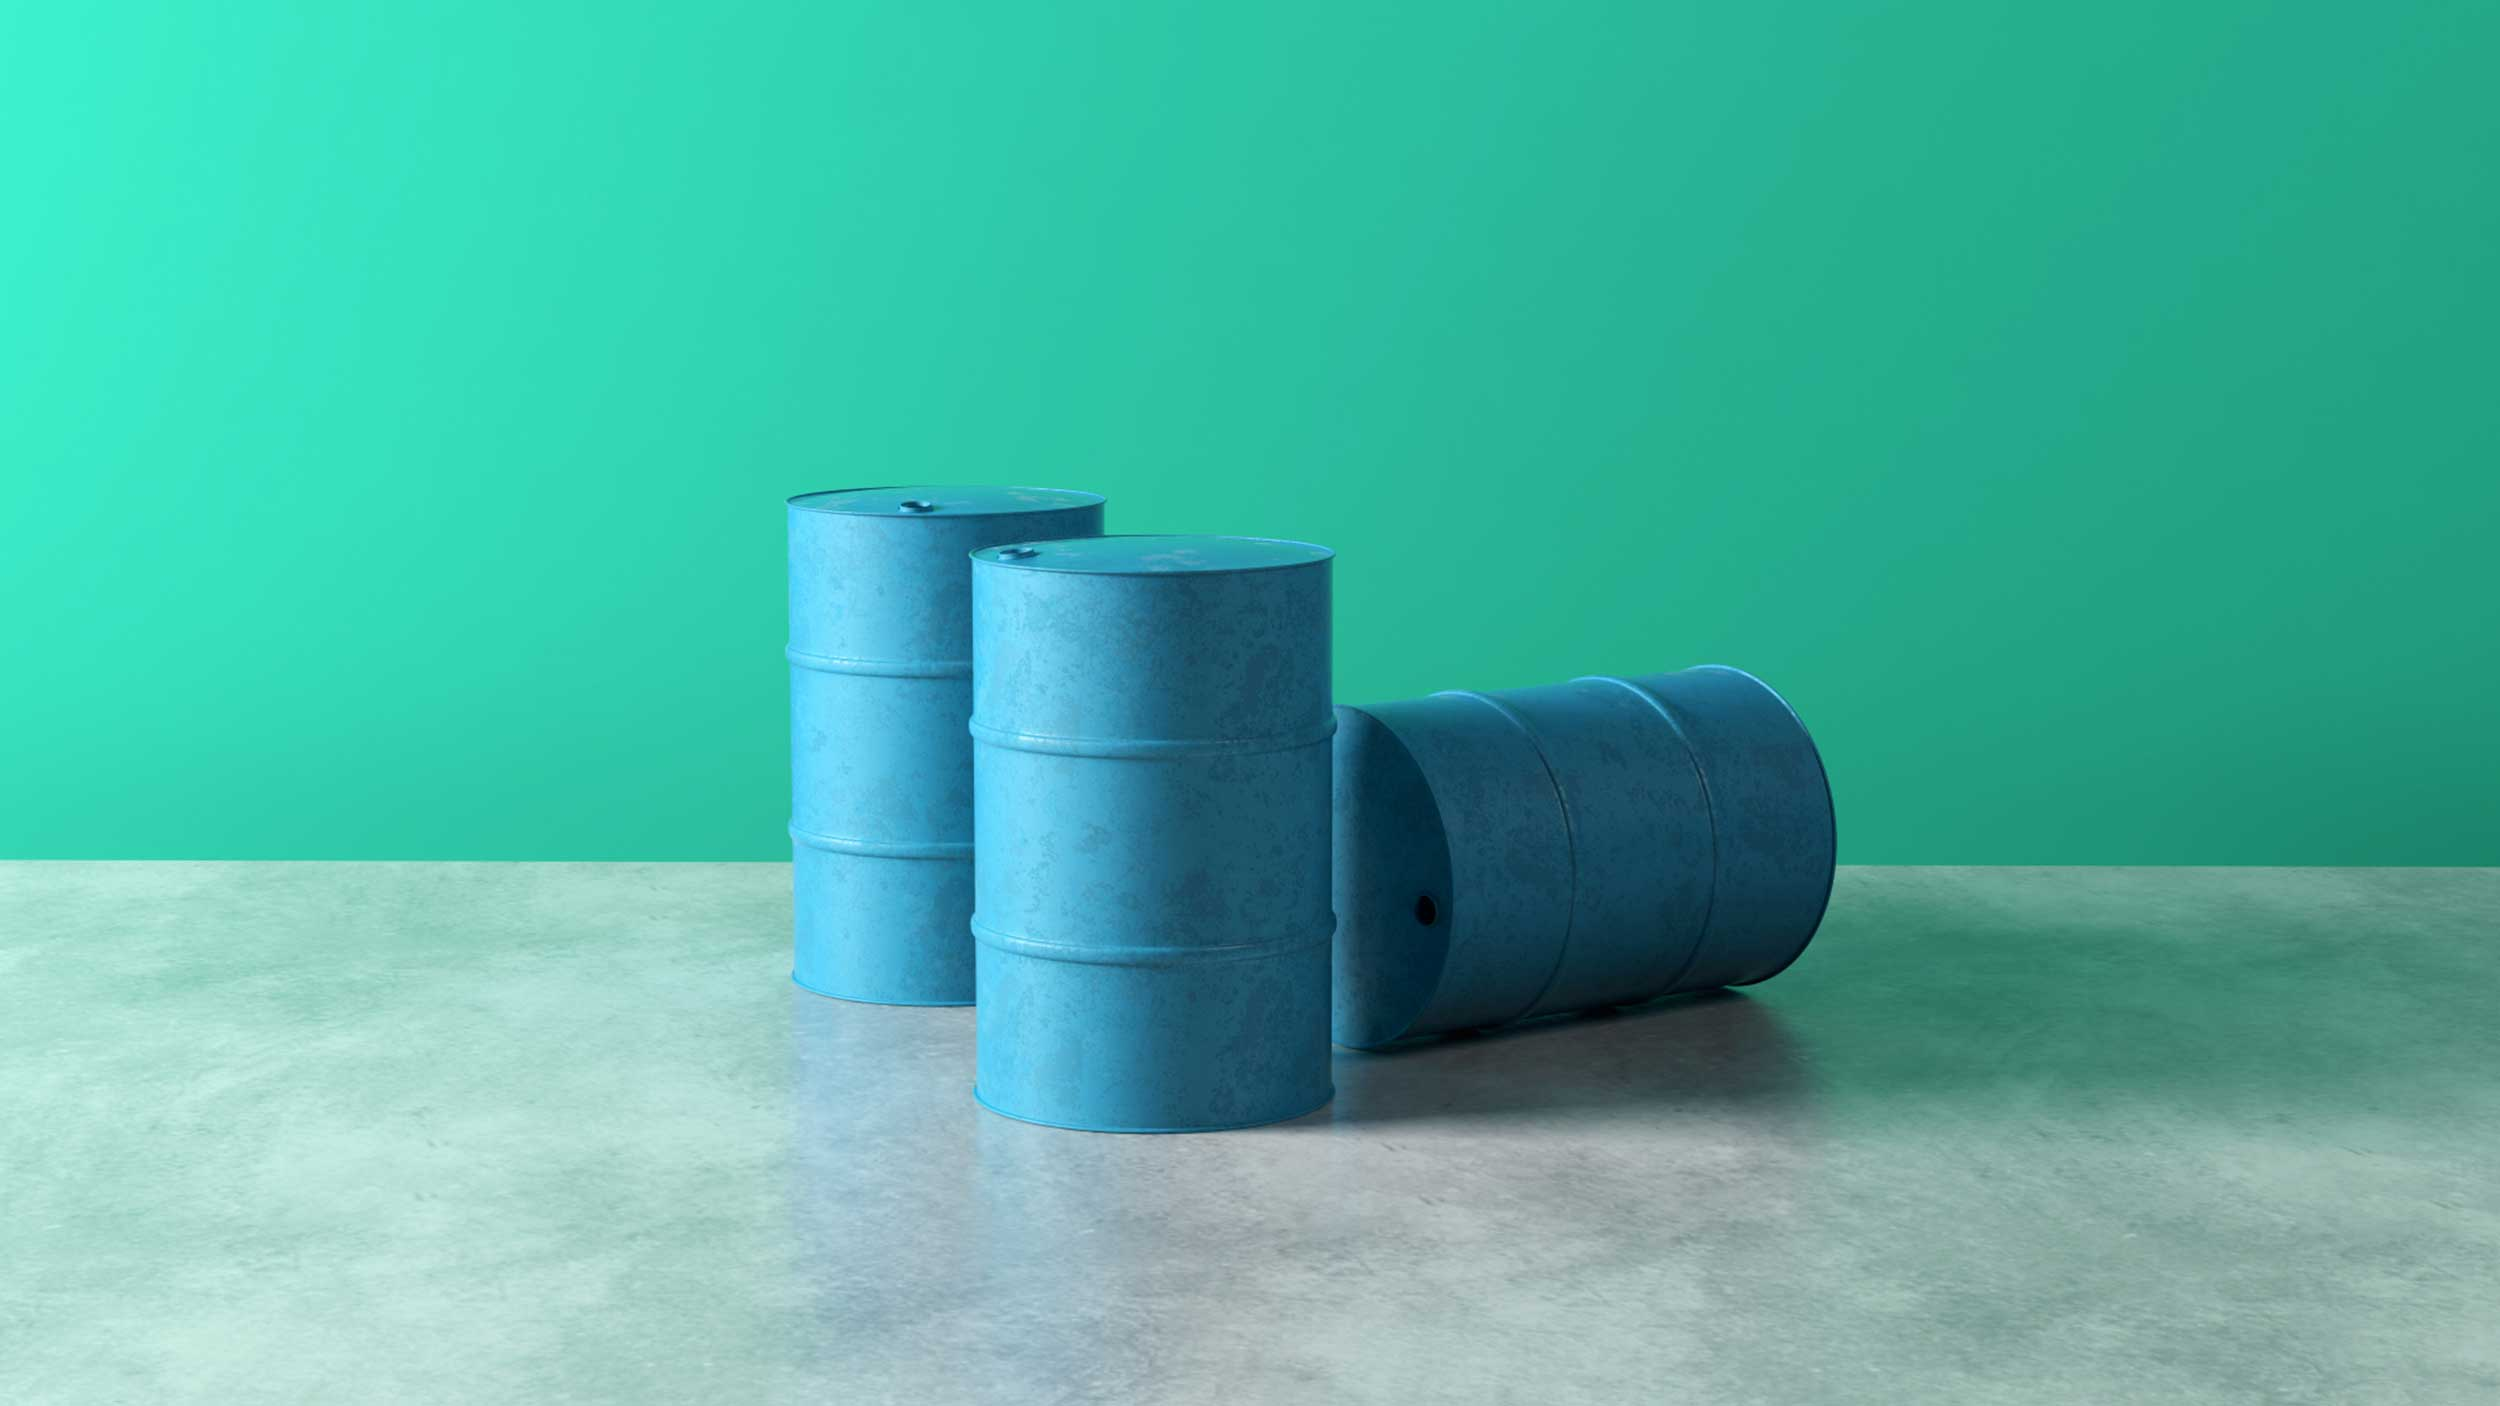 cgi-product-3-blue-barrels-in-front-of-an-aqua-wall-Nico Castro